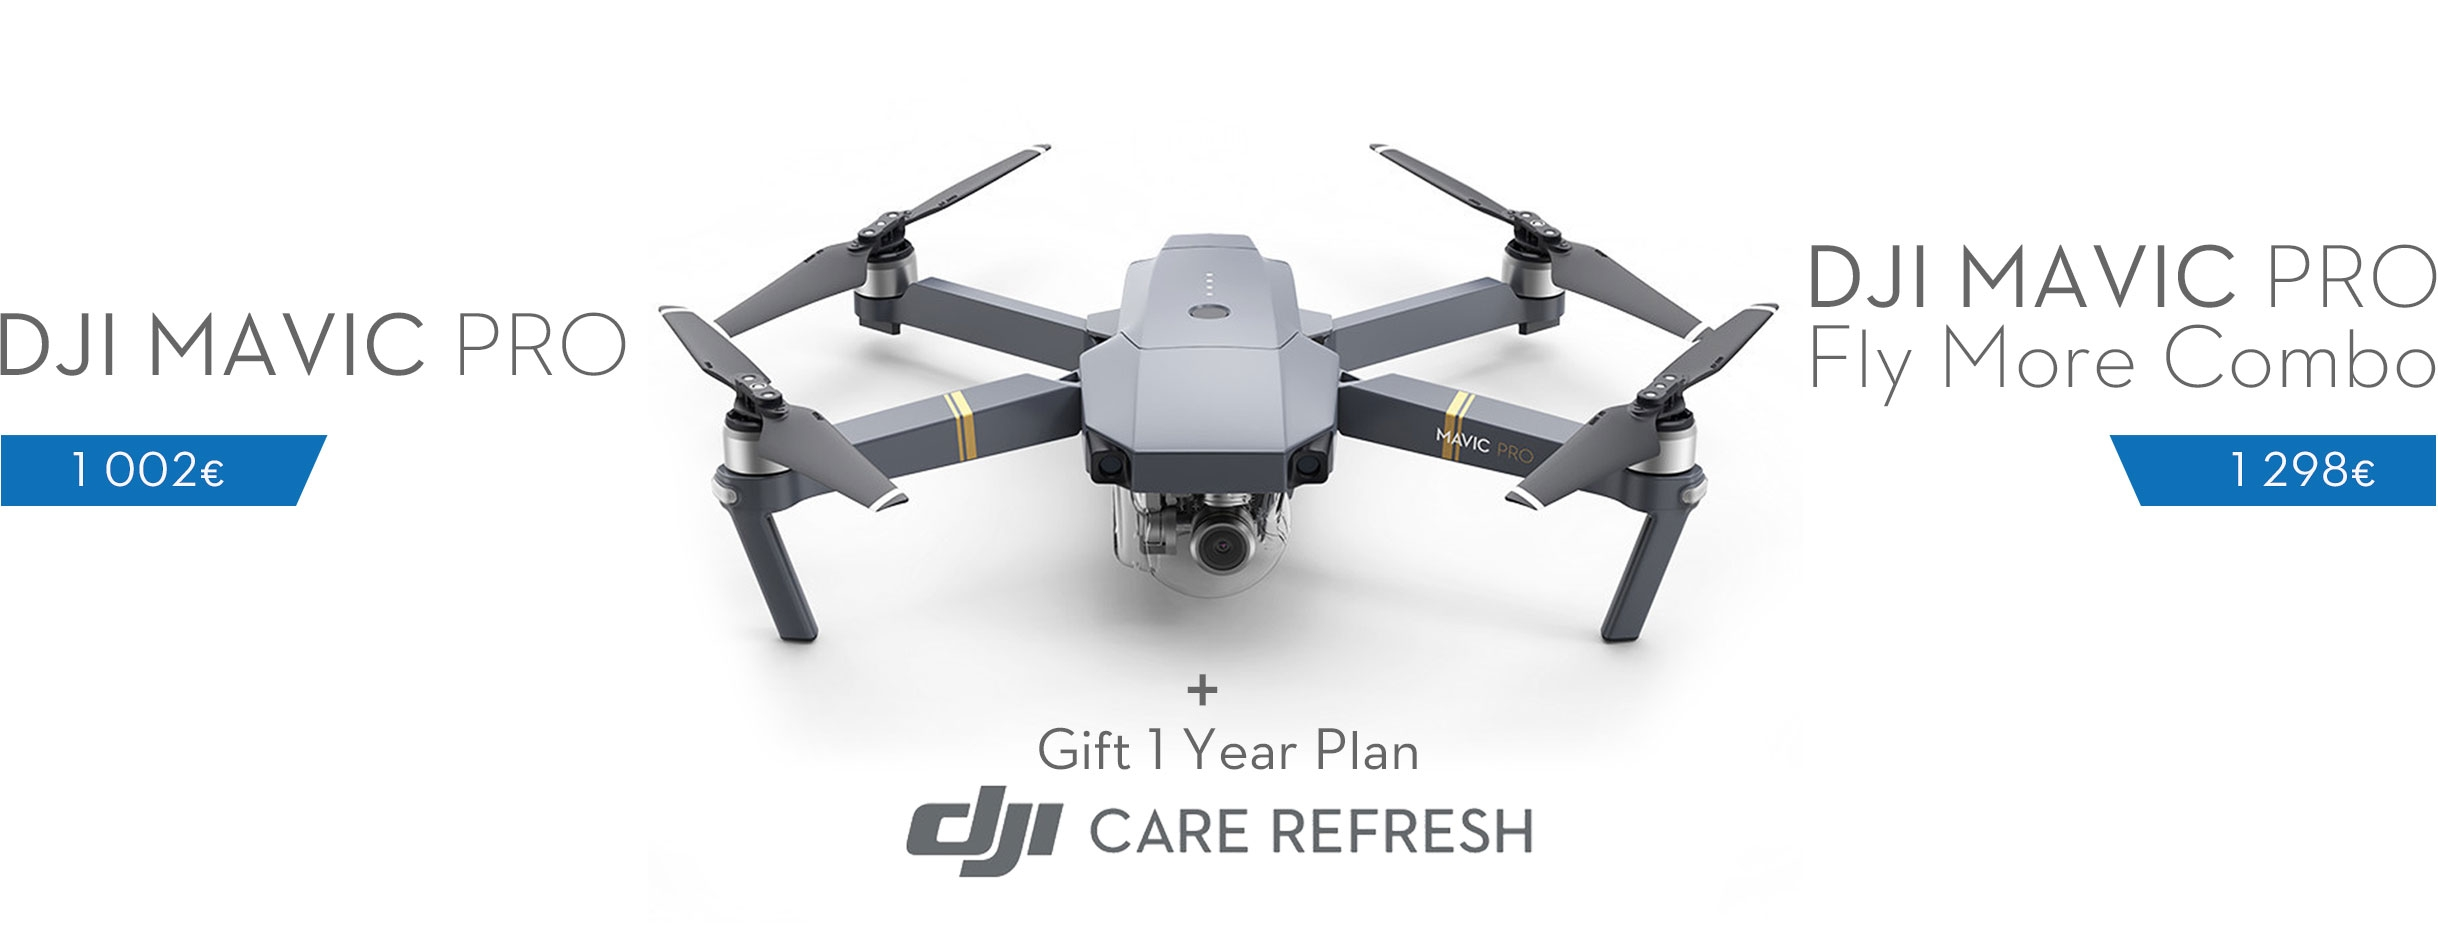 Order DJI Mavic Pro and Mavic Pro Fly More Combo with Gift 1 Year Plan DJI Care Refresh